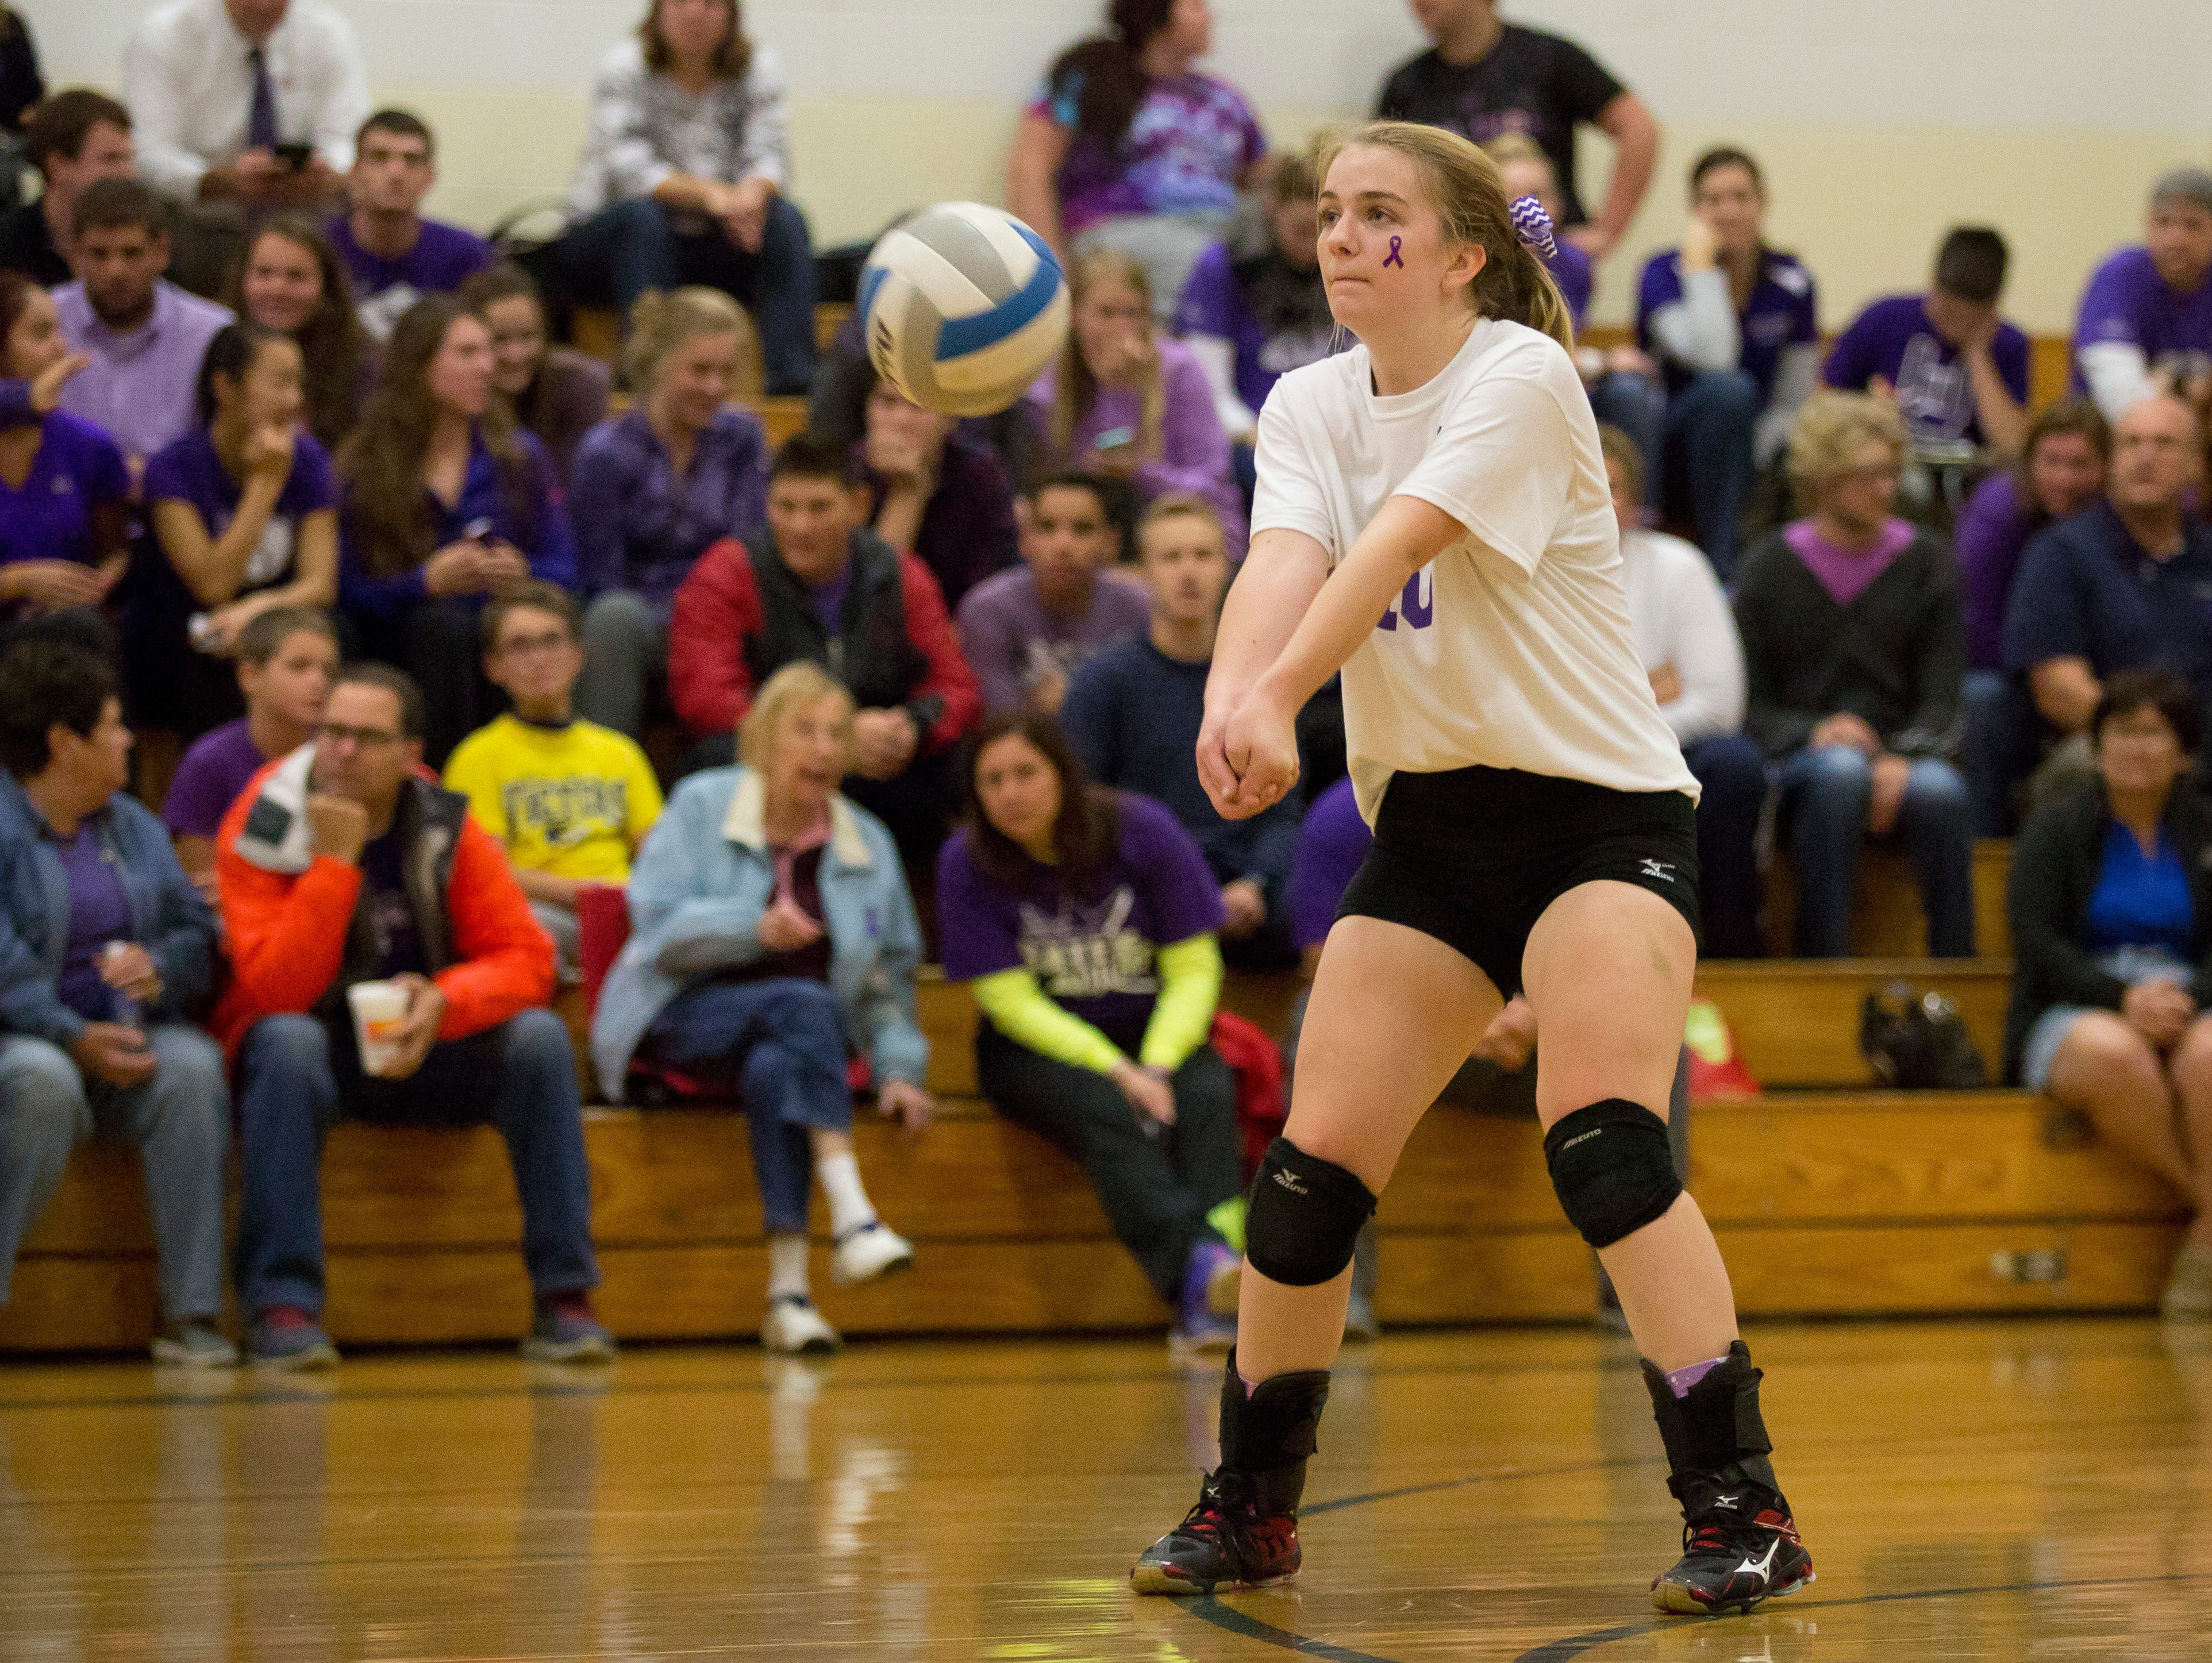 Cardinal Mooney junior Abbey Guilliat bumps the ball during a volleyball game Wednesday, October 28, 2015 at Cardinal Mooney High School.